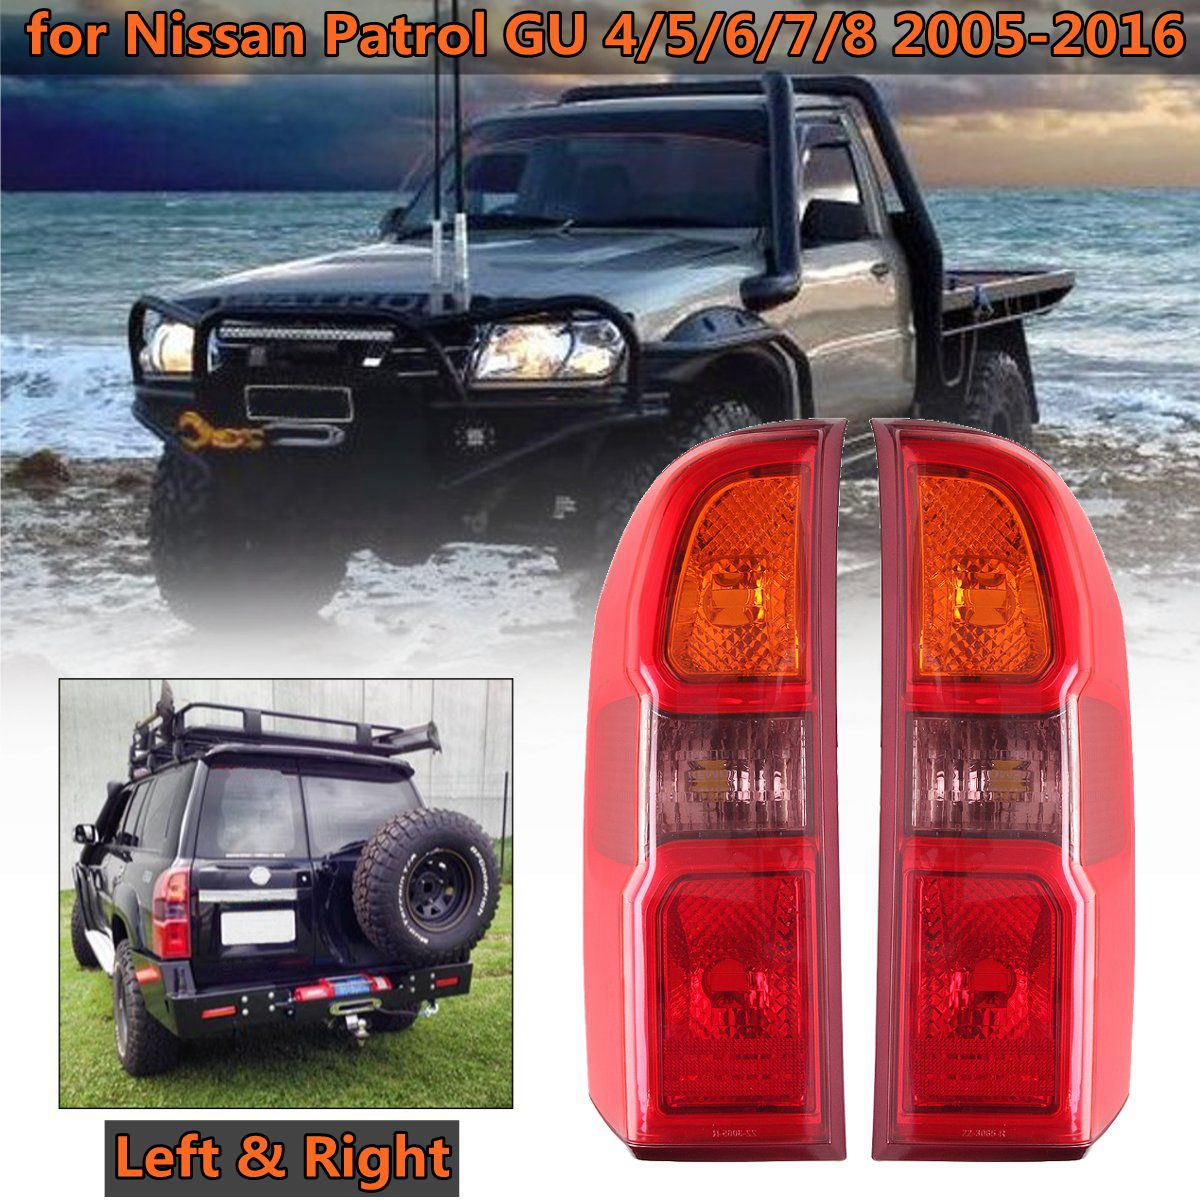 Rear Driver Passenger Side Tail Light Brake Lamp For Nissan Patrol GU 4/5/6/7/8 2005 2006 2007 2008 2009 2010 2011 2012~2016 1 pc outer rear tail light lamp taillamp taillight rh right side gr1a 51 170 for mazda 6 2005 2010 gg page 5